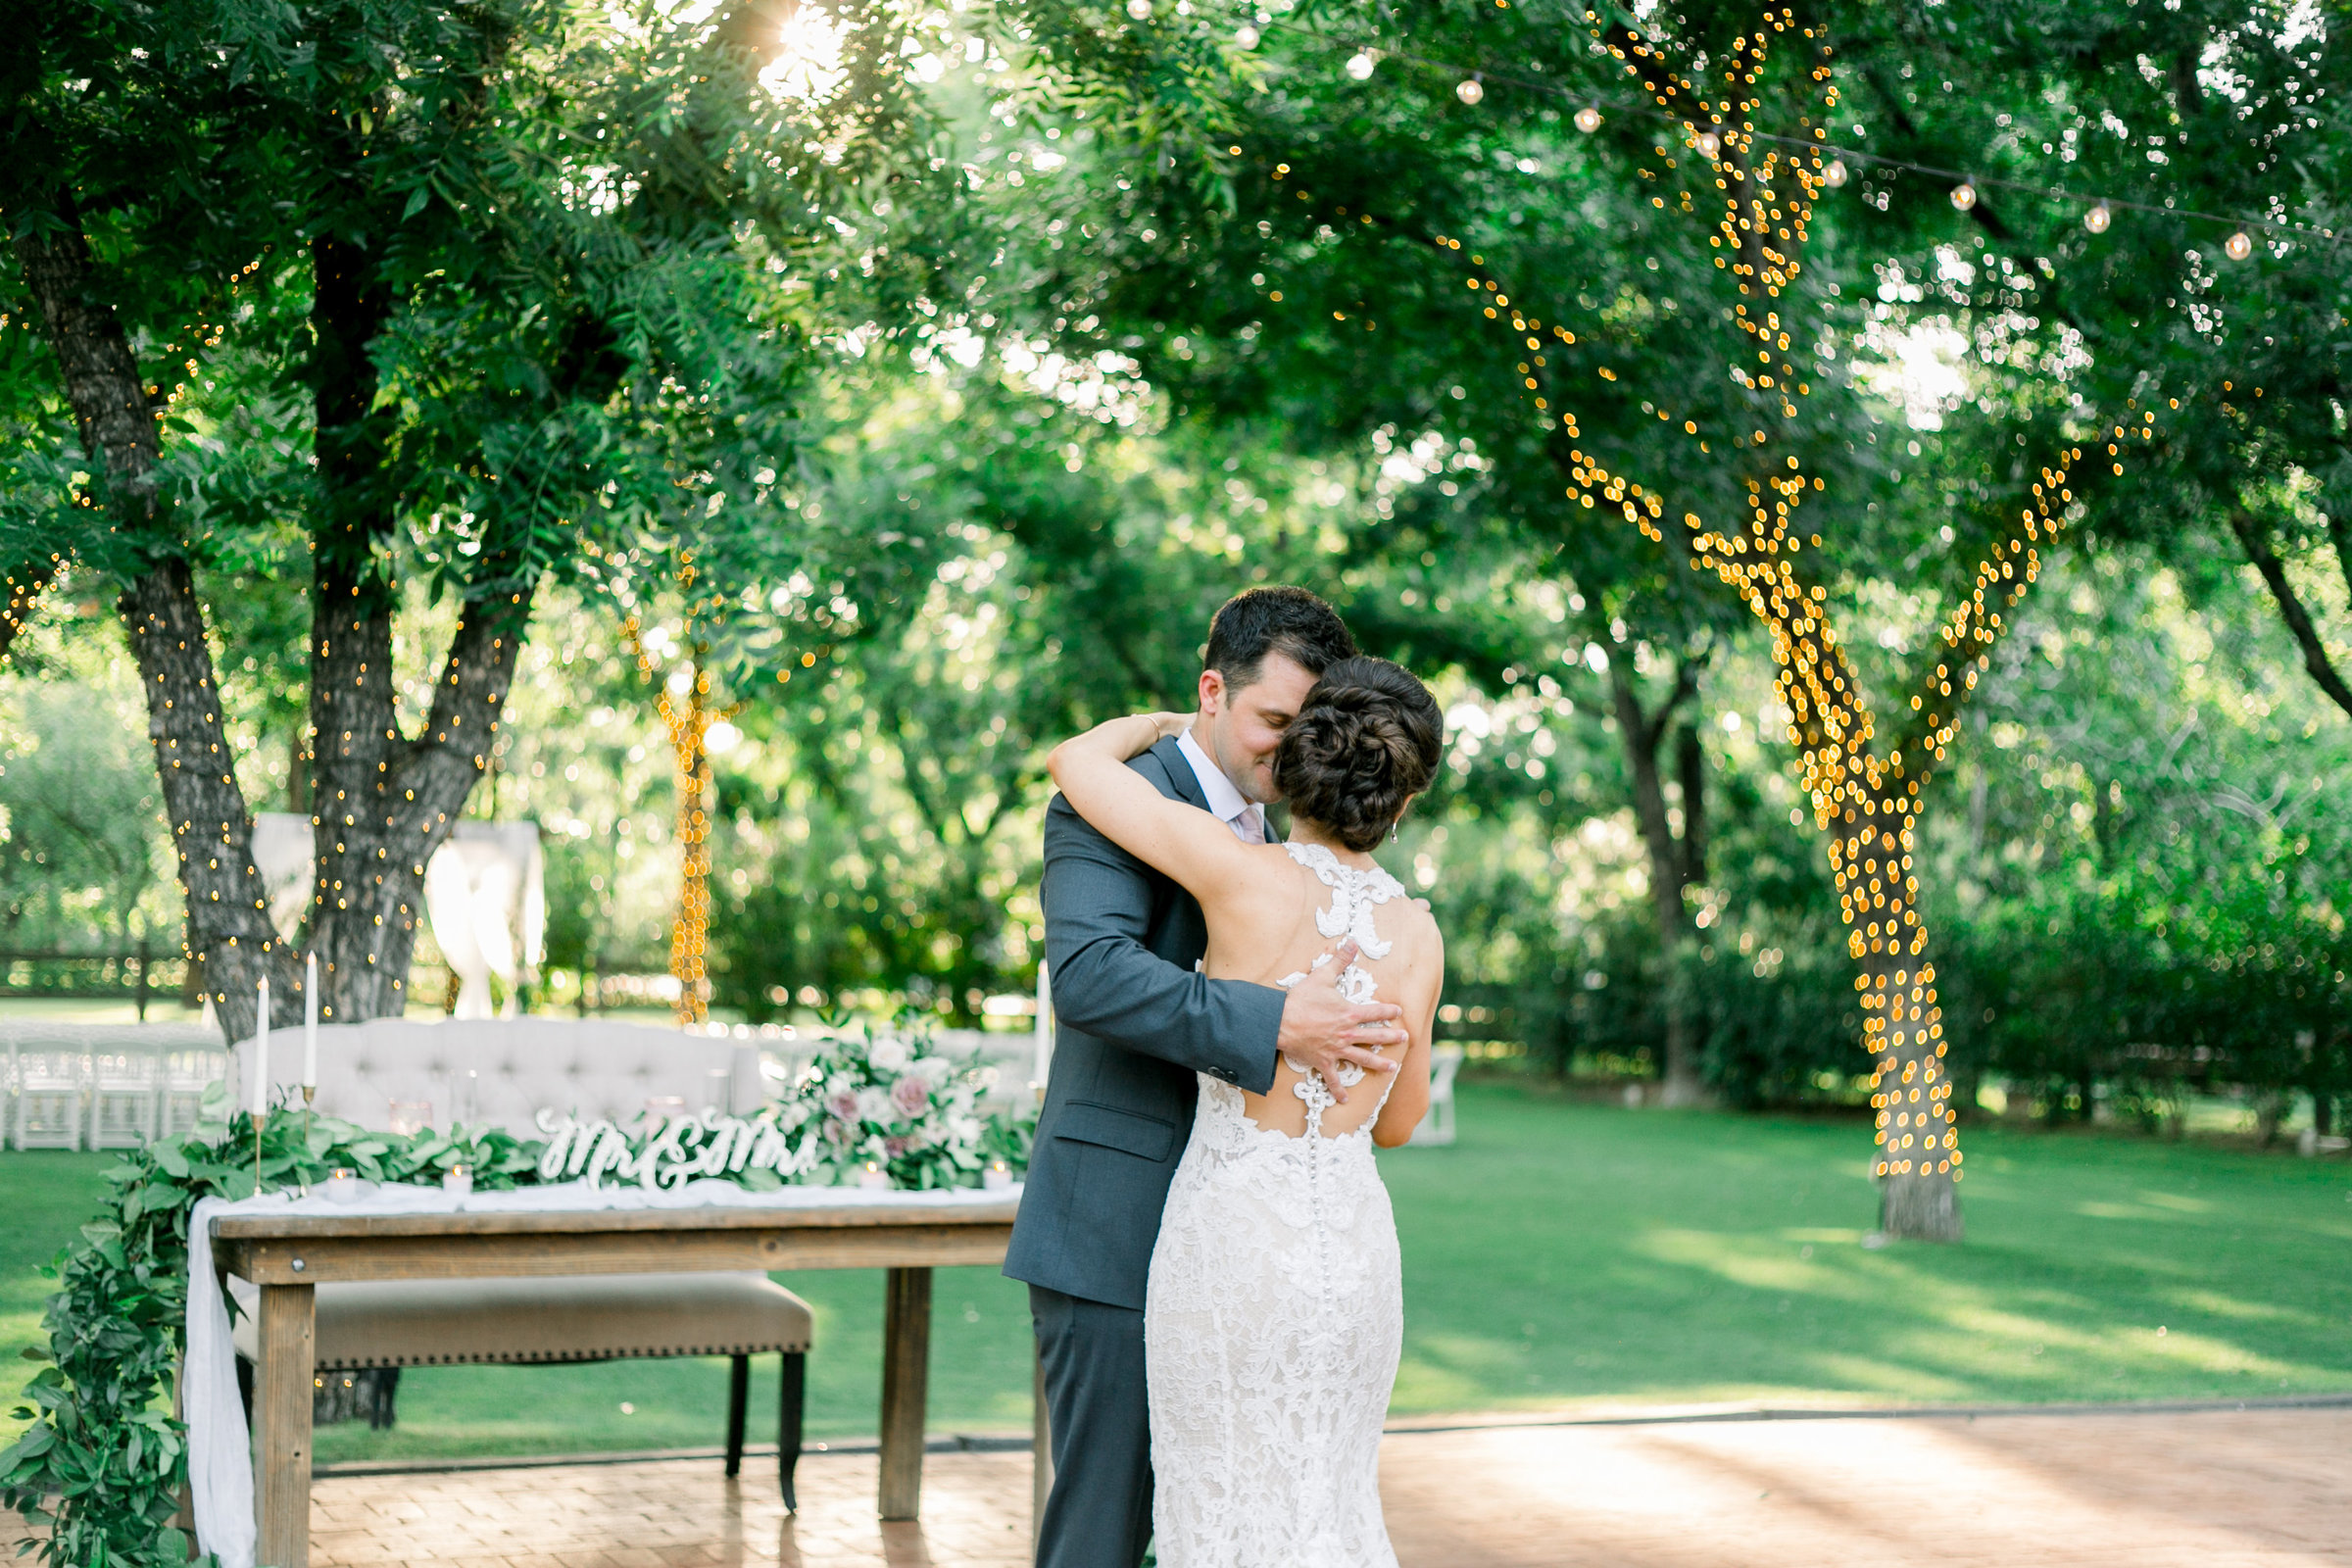 Karlie Colleen Photography - Venue At The Grove - Arizona Wedding - Maggie & Grant -98